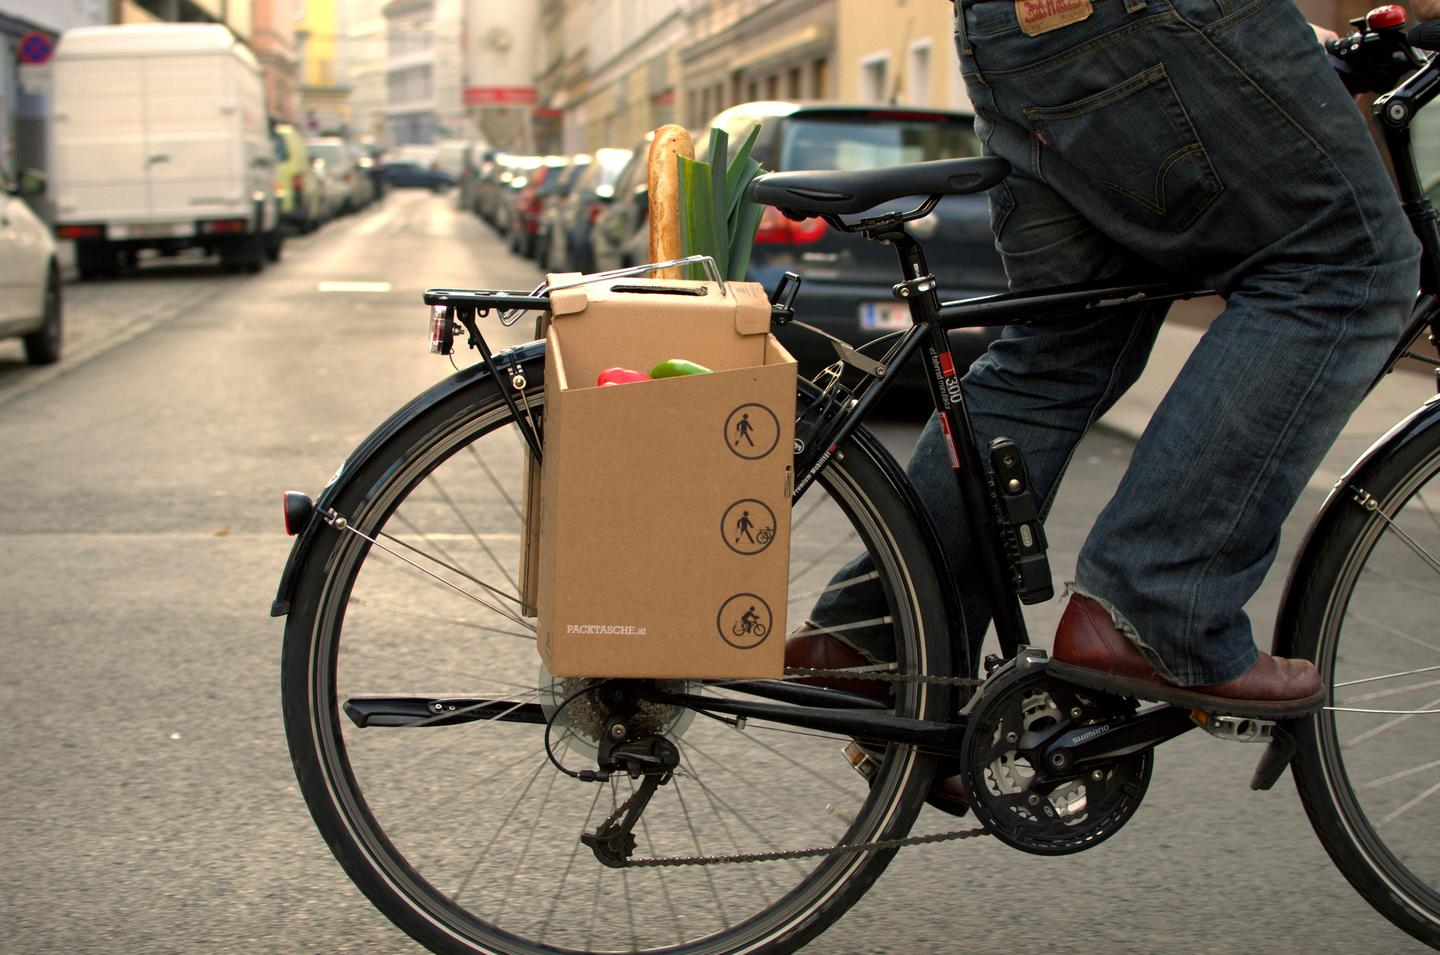 The Packtasch, by Philipp Moherndl and Matthias Lechner